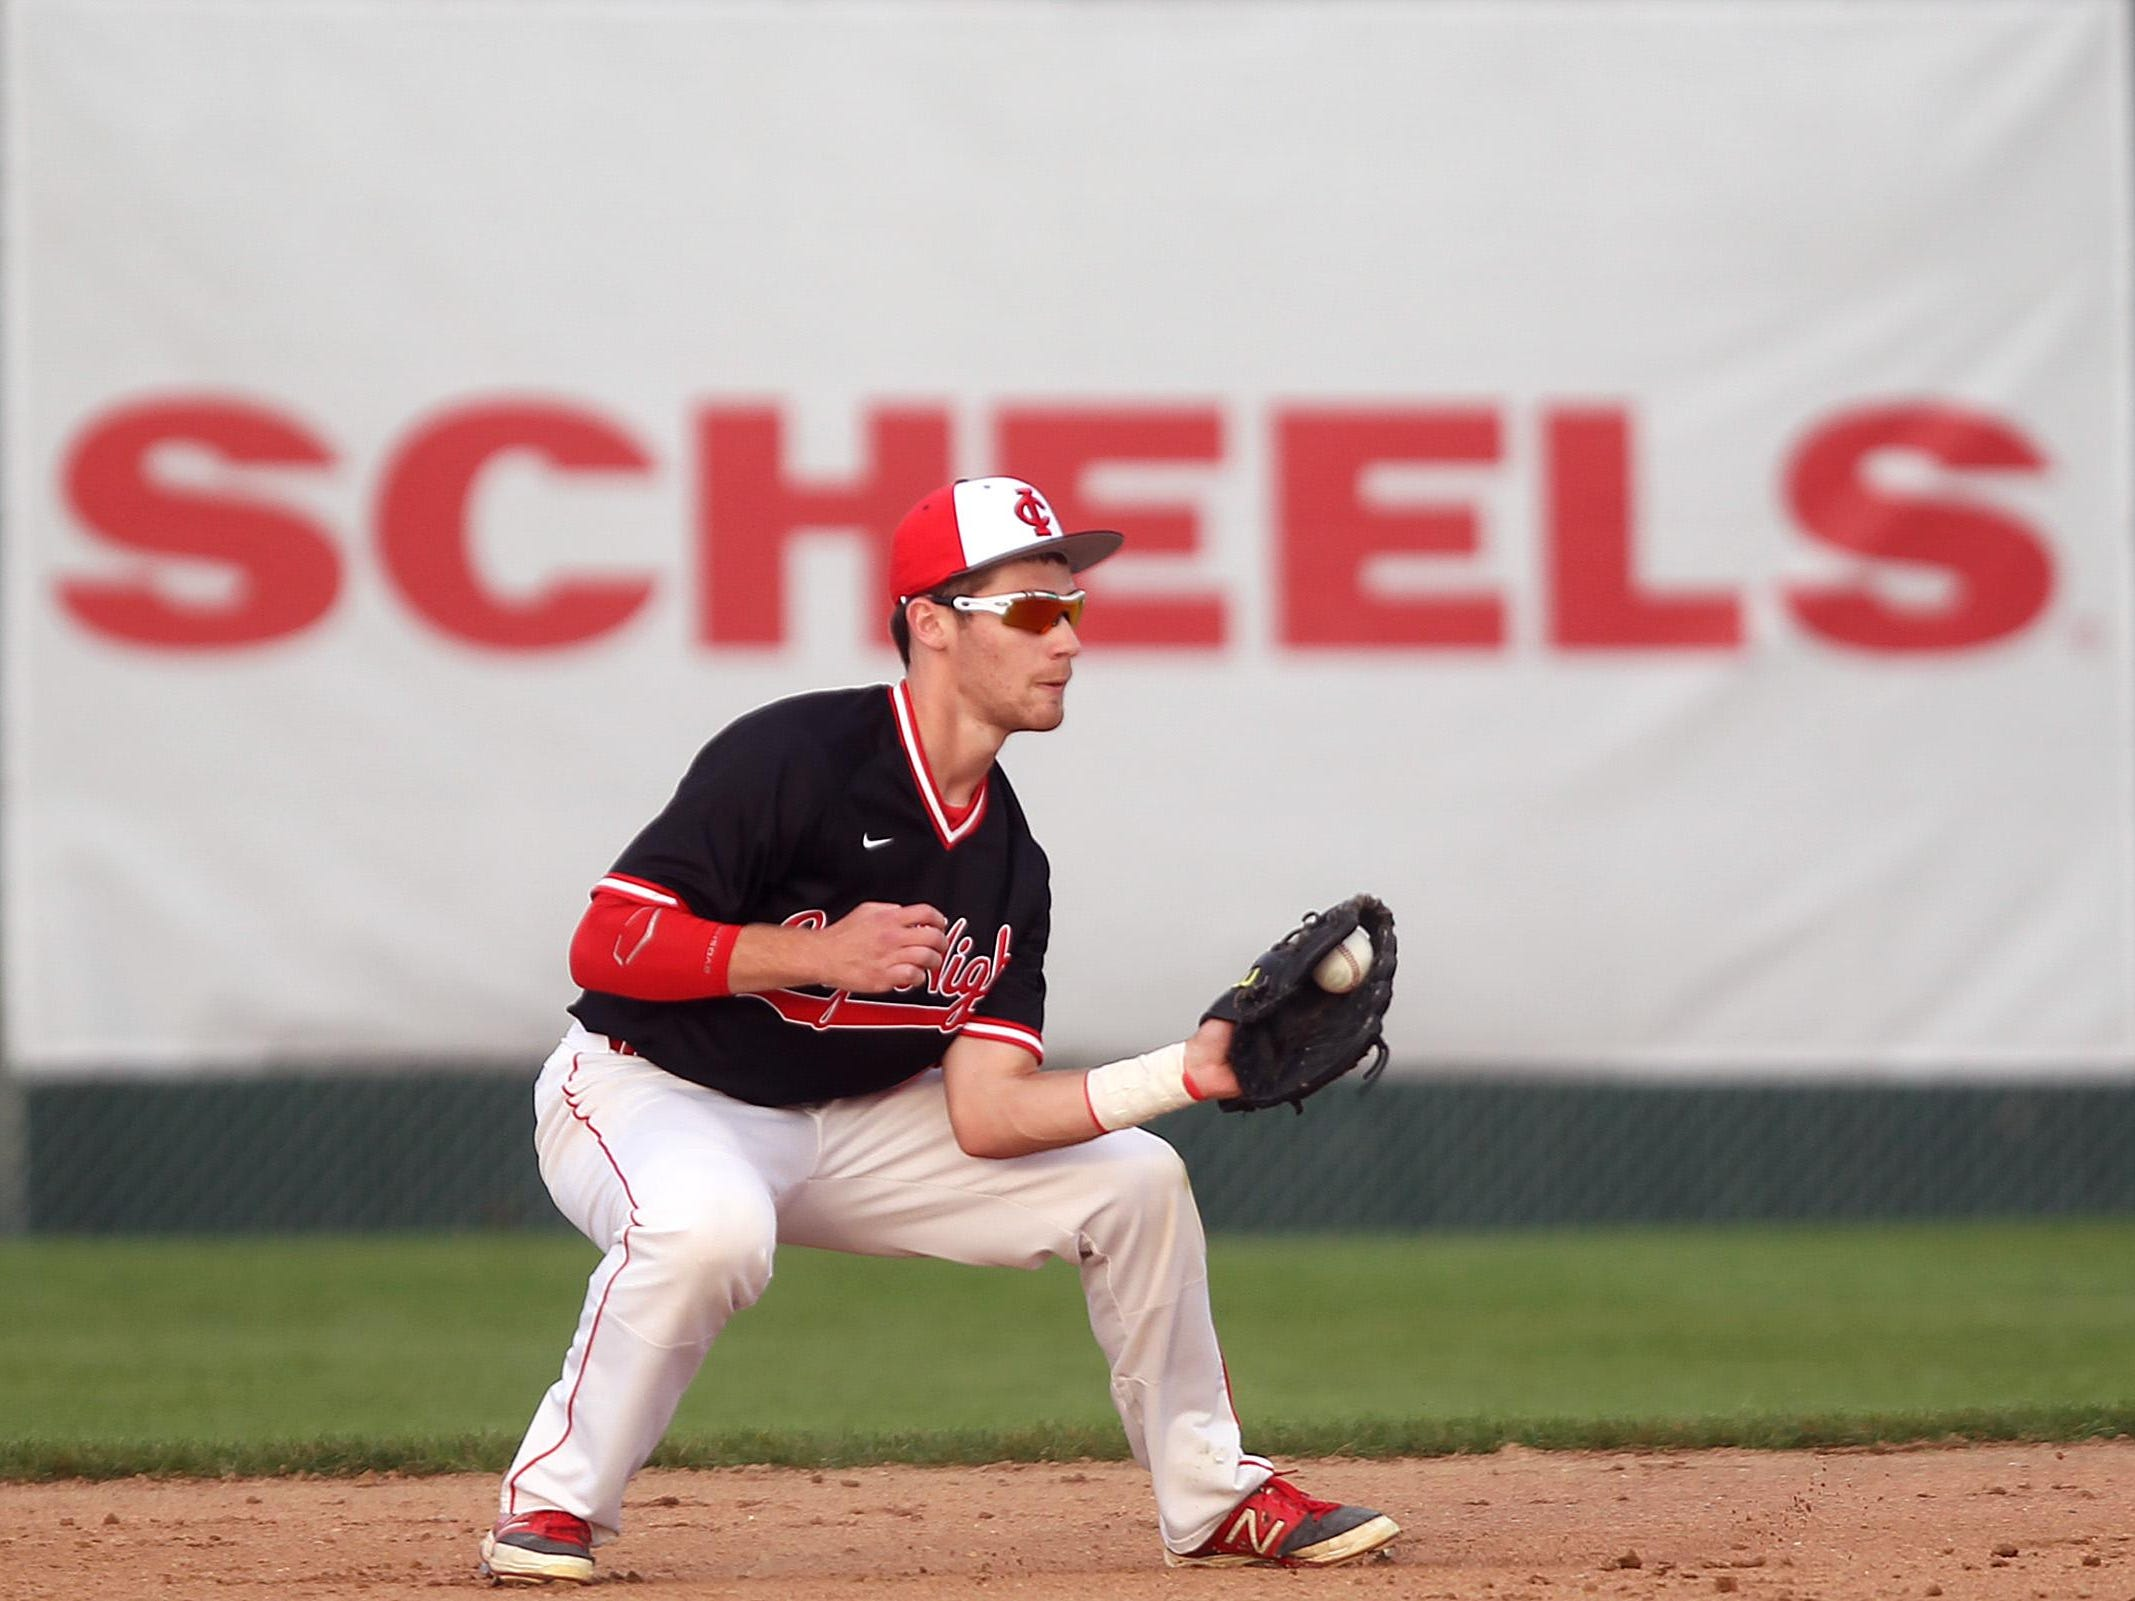 City High's Dylan Leigh pulls in a ground ball. The Little Hawks have six games to play in the regular season.